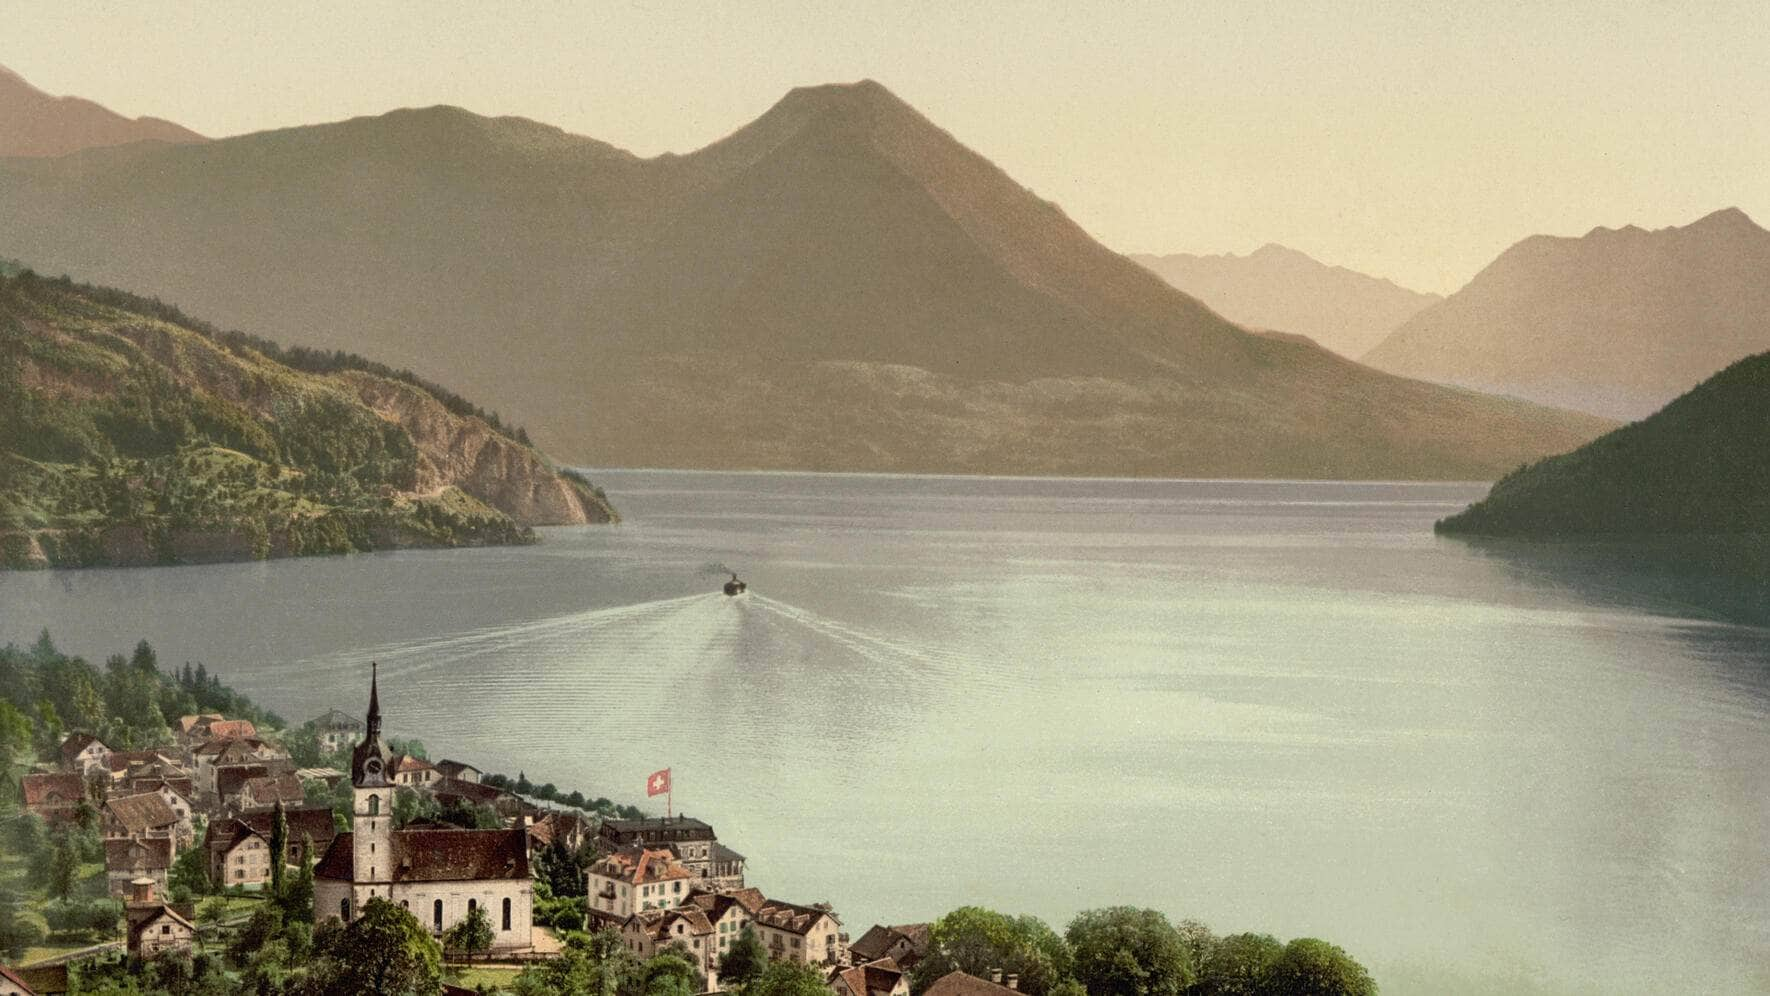 Lake Lucerne, Vitznau, Switzerland, Photochrome Print, circa 1900.  (Photo by: Universal History Archive/Universal Images Group via Getty Images)